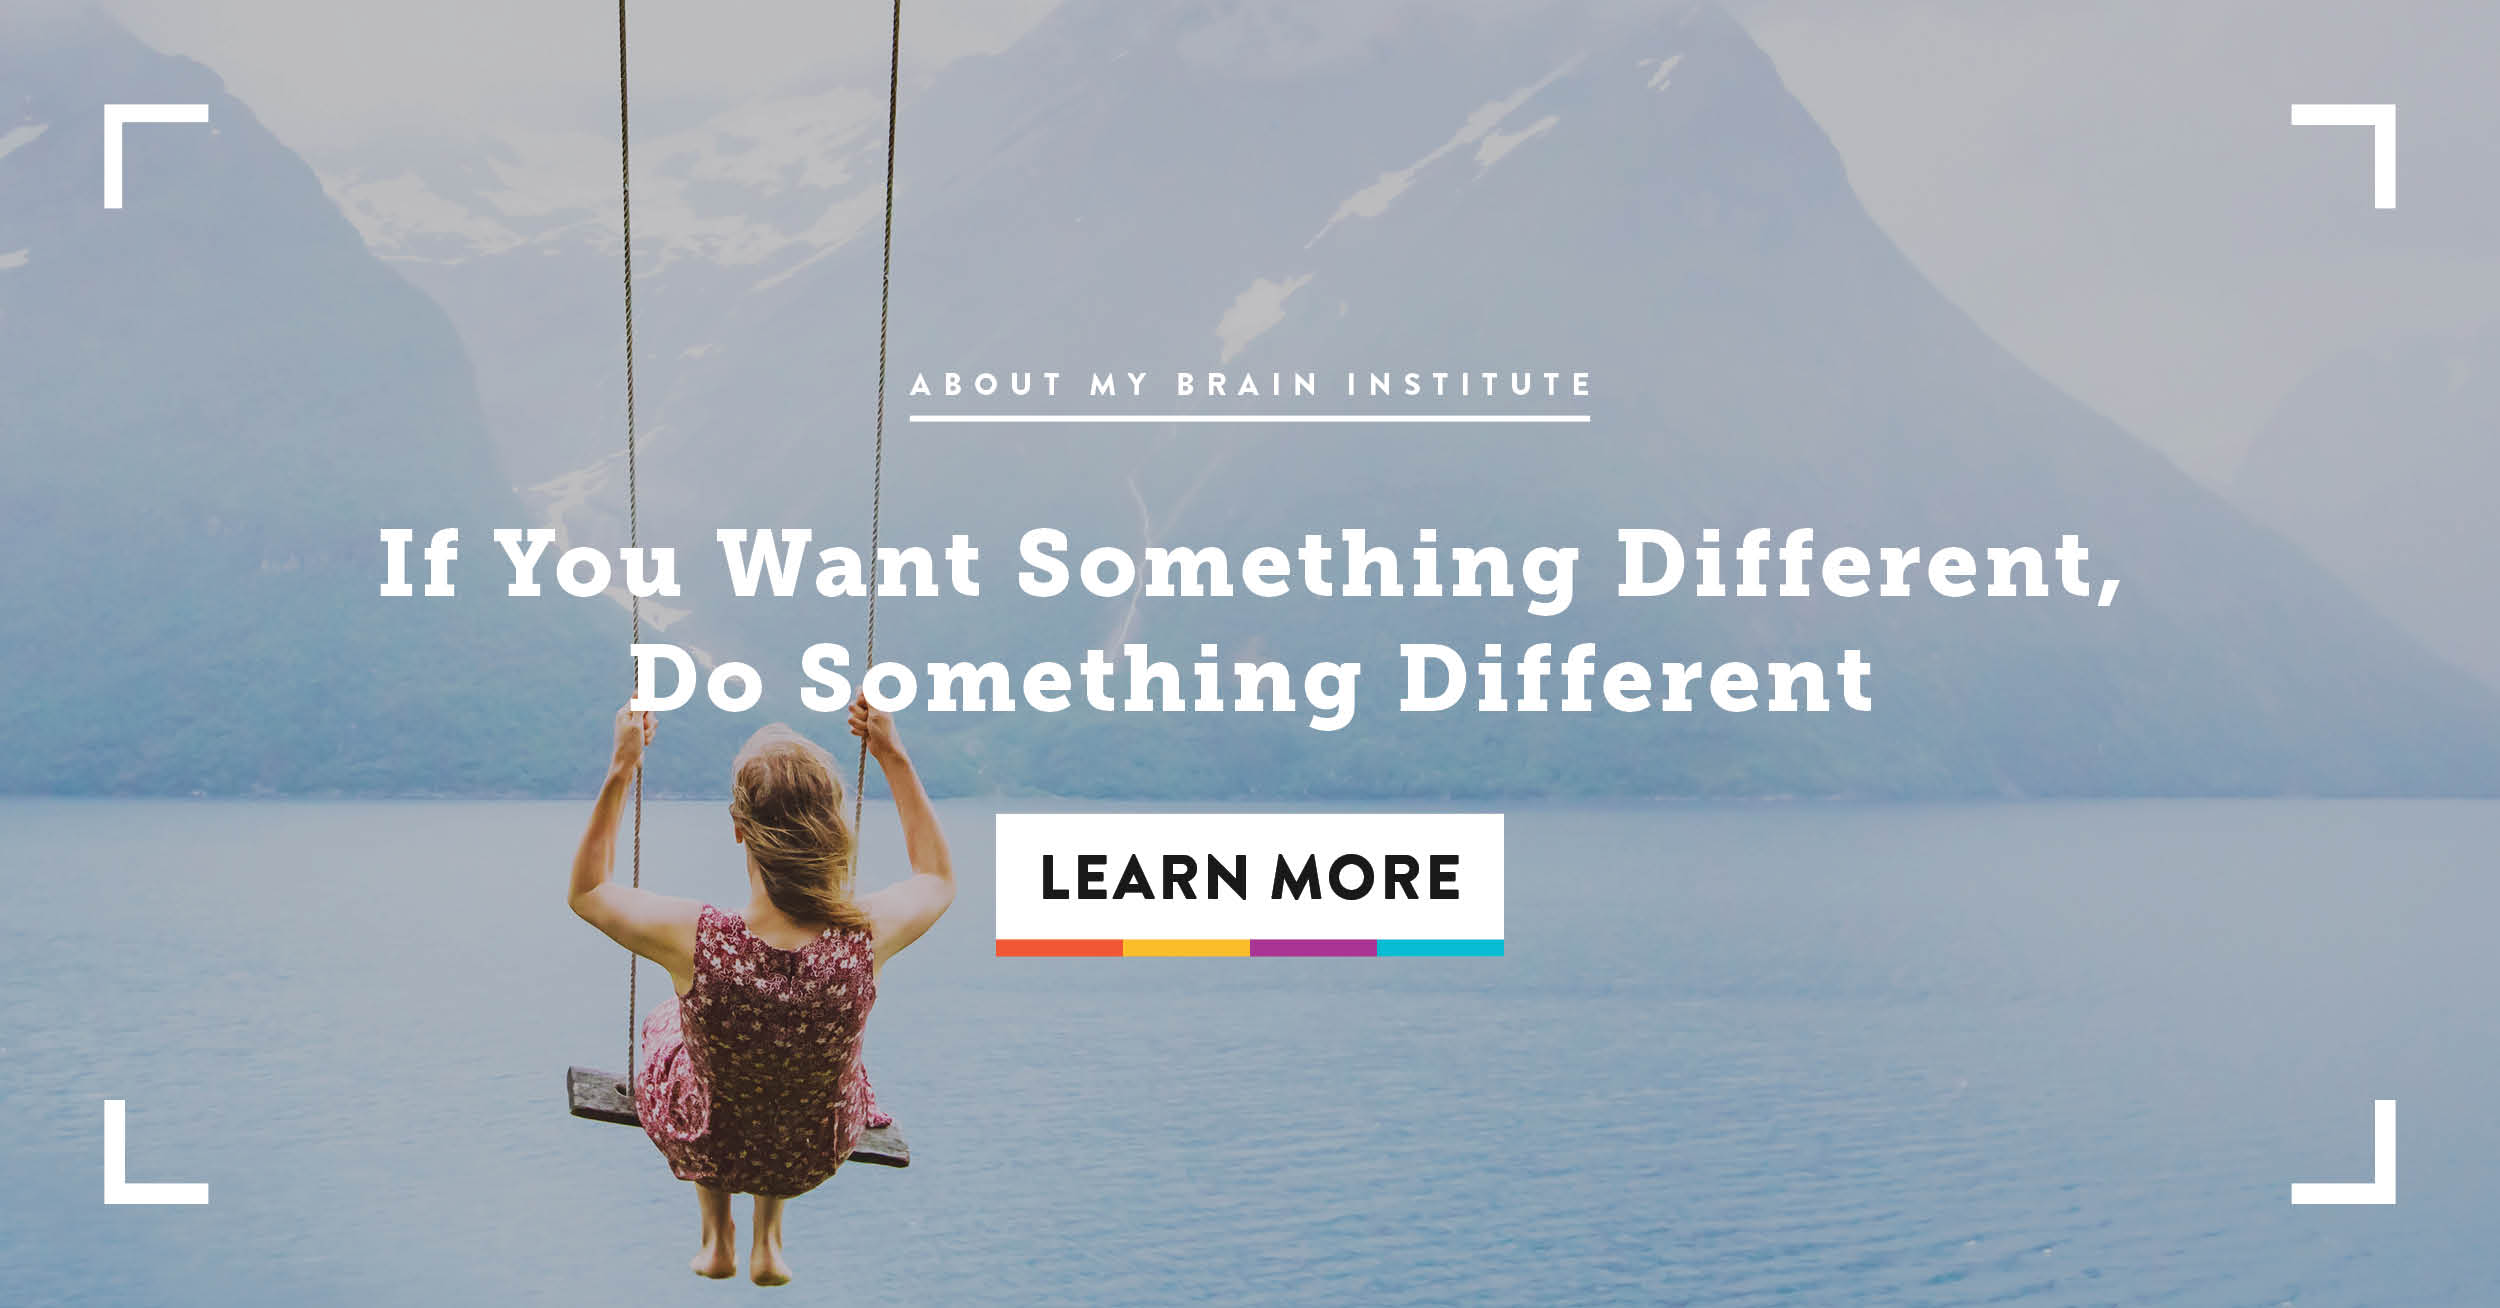 If You Want Something Different, Do Something Different